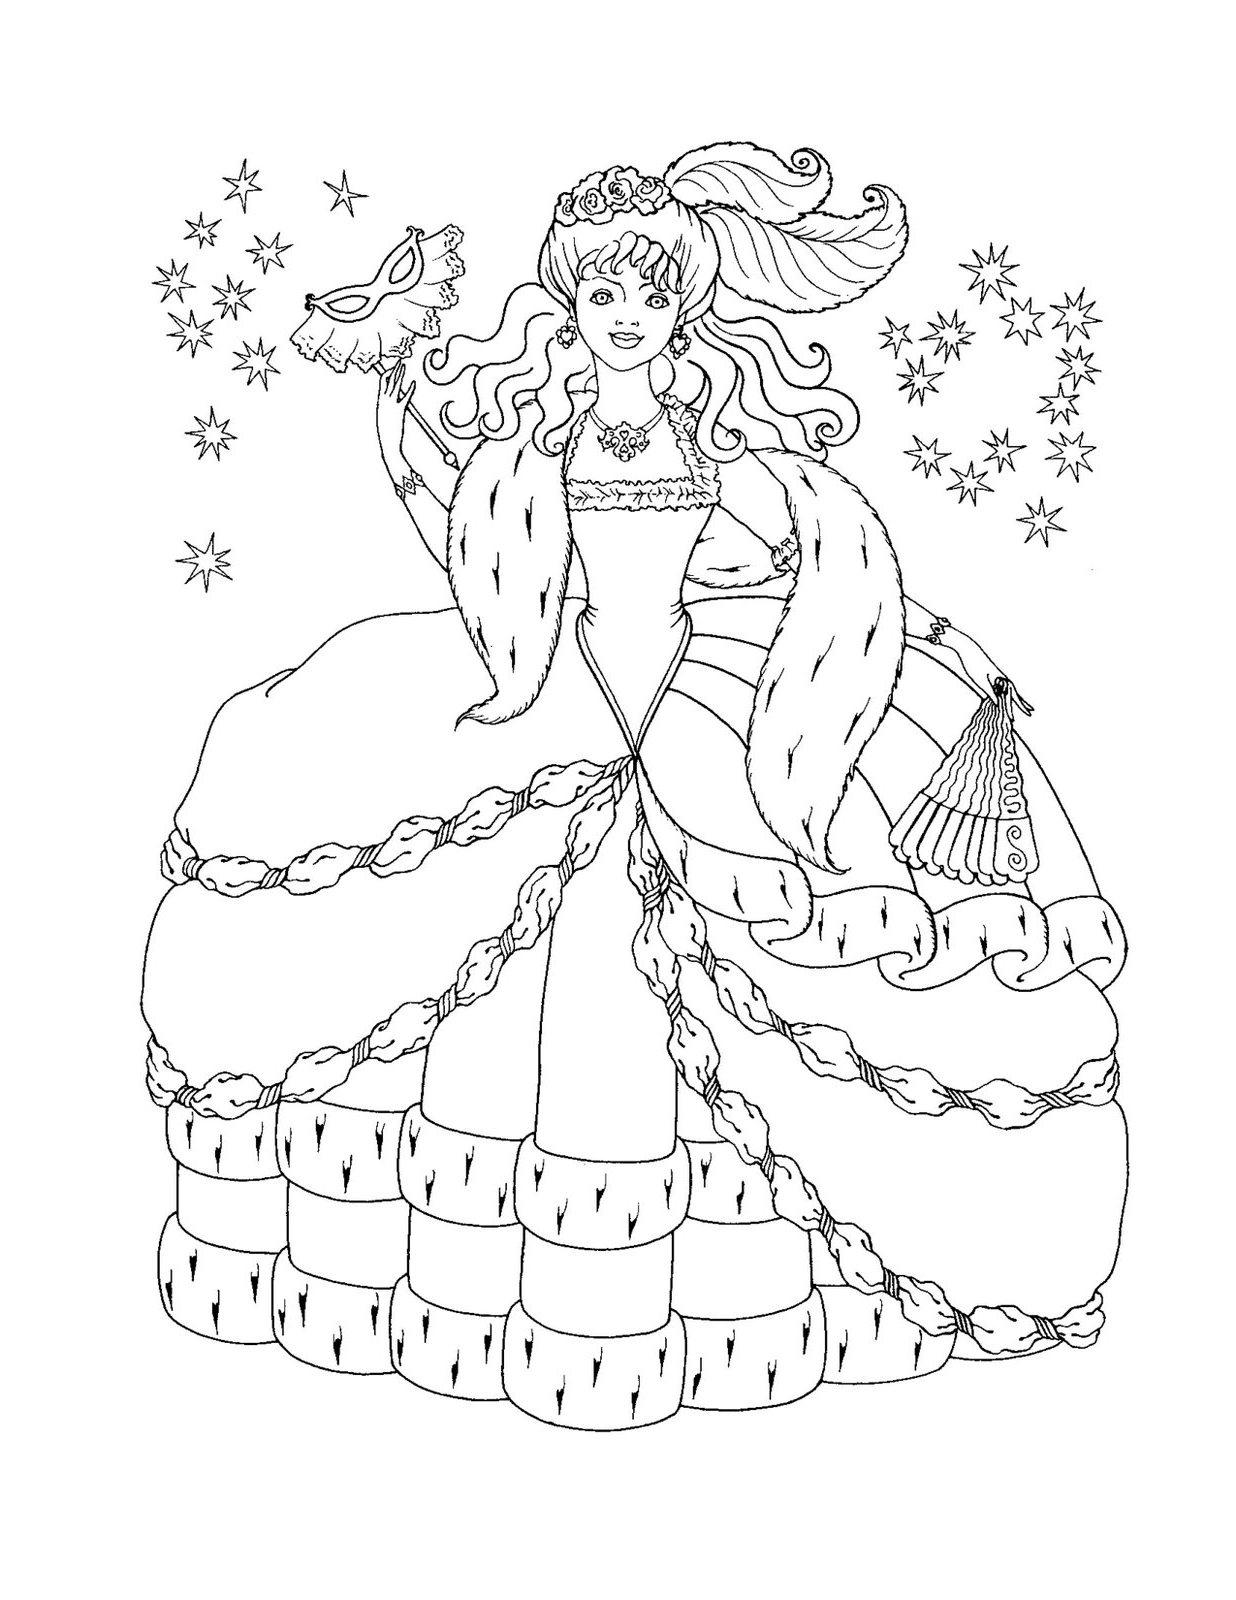 Free Printable Disney Princess Coloring Pages For Kids Princess Printable Coloring Pages Free Coloring Sheets